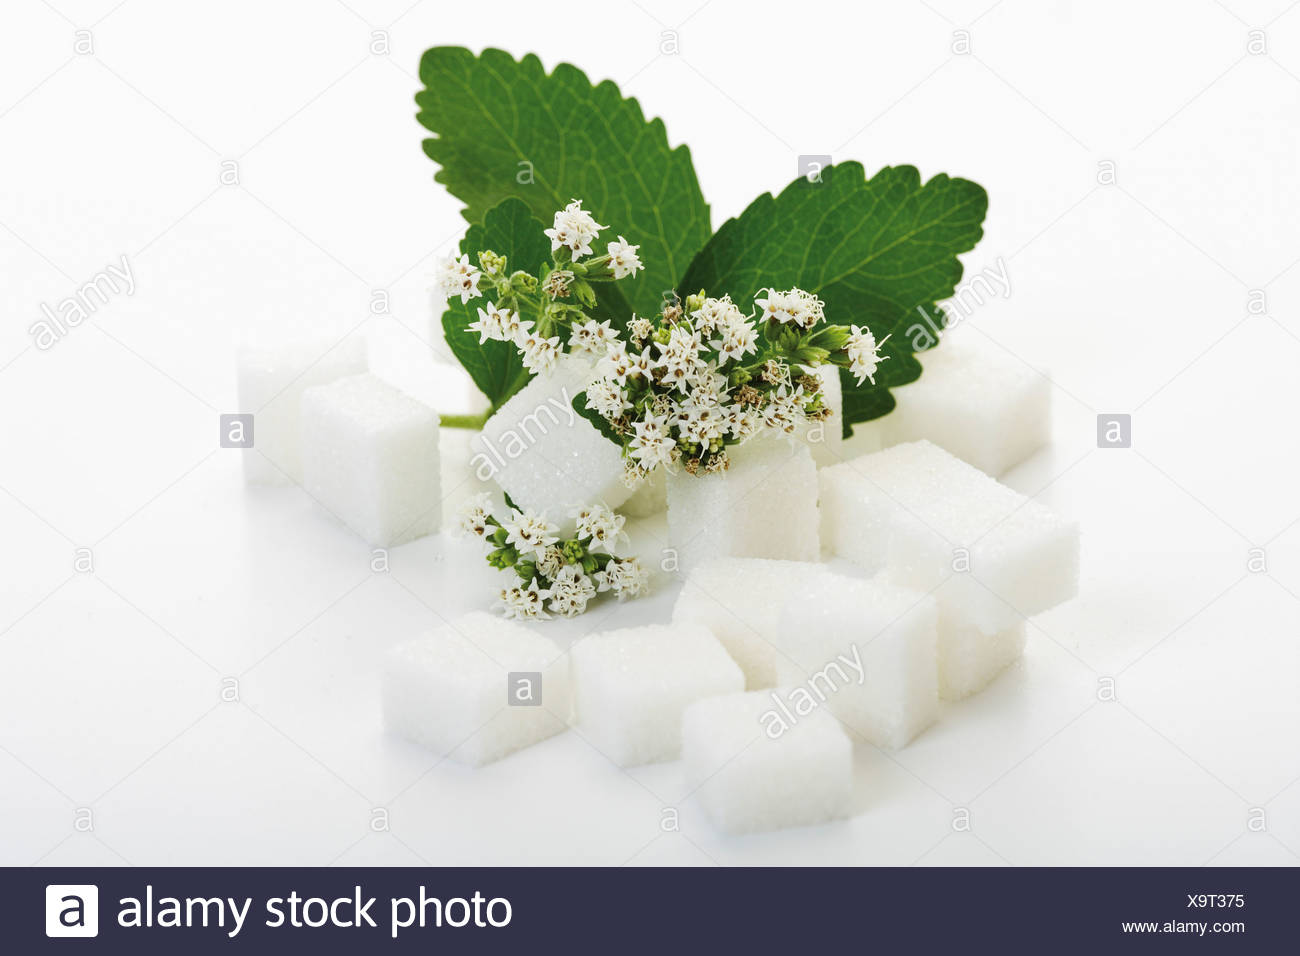 Sugar lumps and stevia leaves with blossom on white background - Stock Image